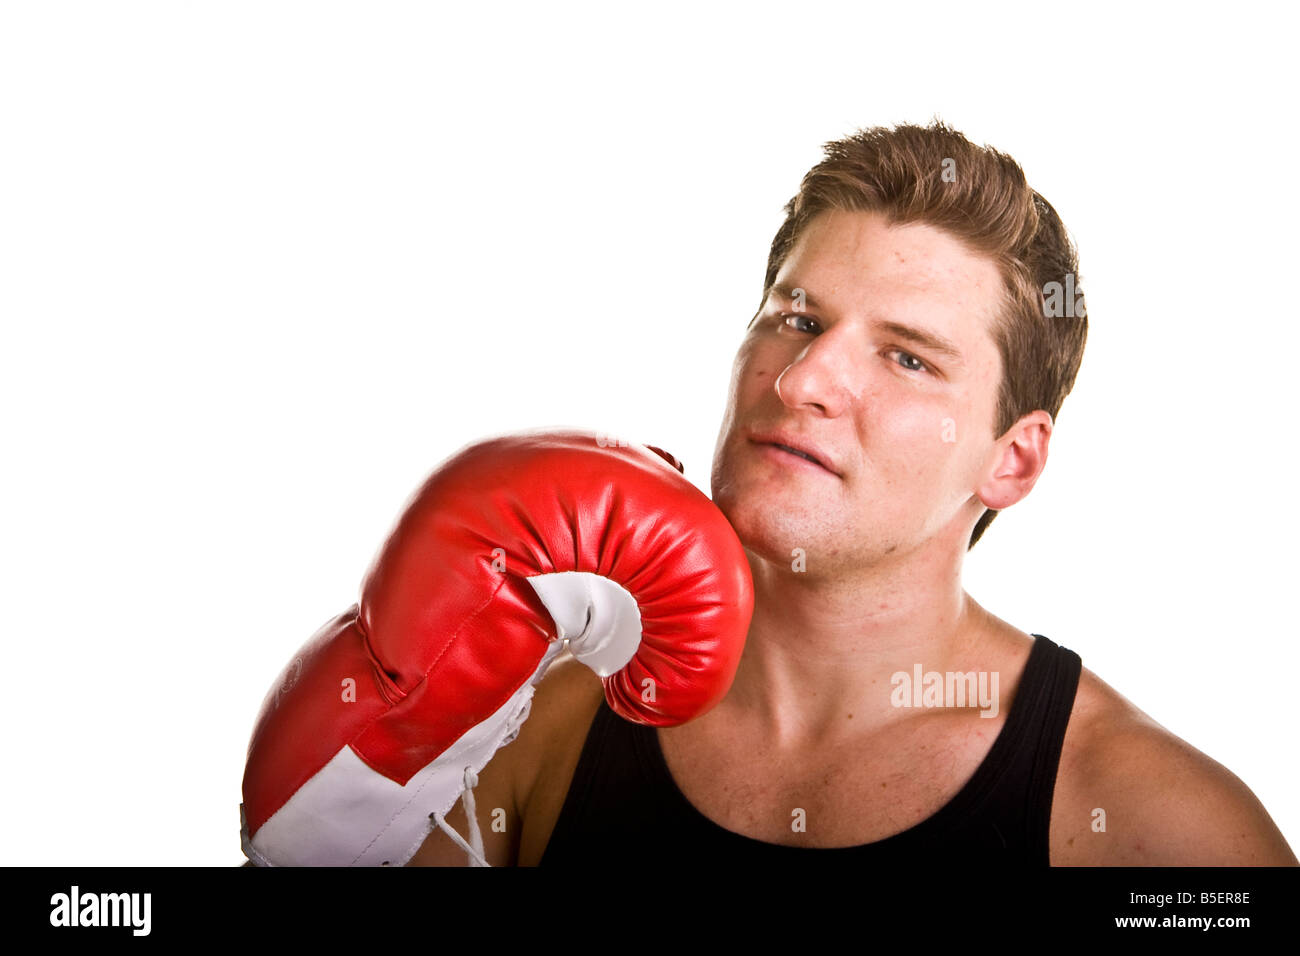 32e9fc3d77e4f An athletic looking young man in black tank top wearing red boxing gloves  with one glove on chin